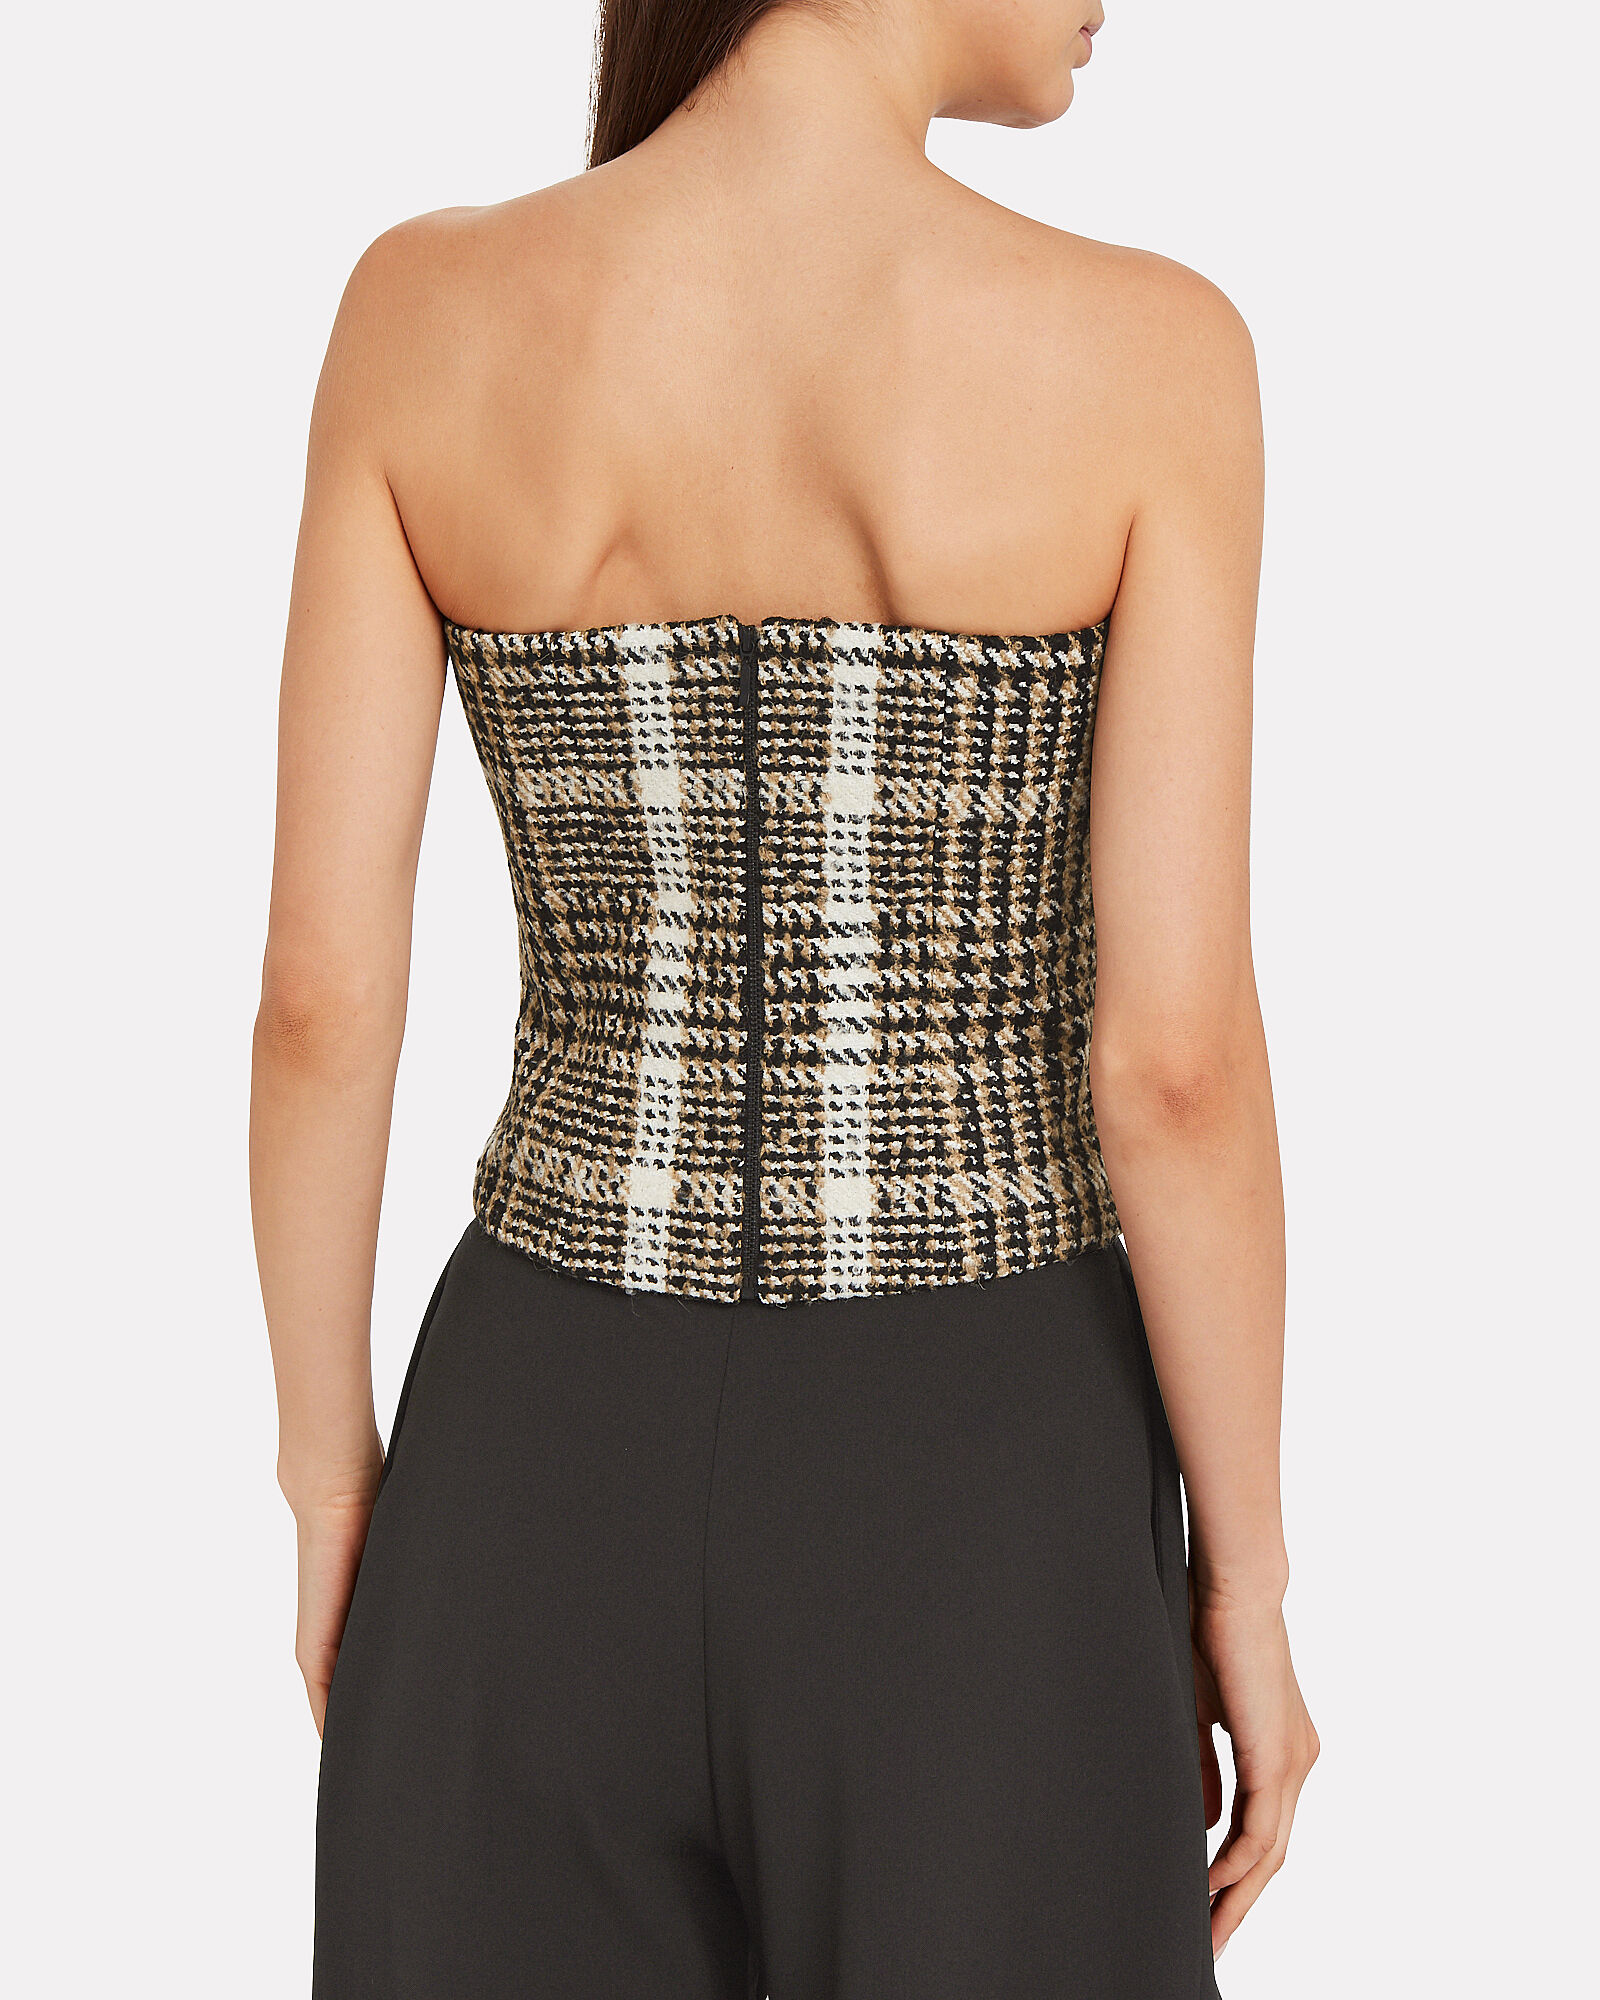 Wool Bouclé Bustier Top, TAUPE/CHECK, hi-res